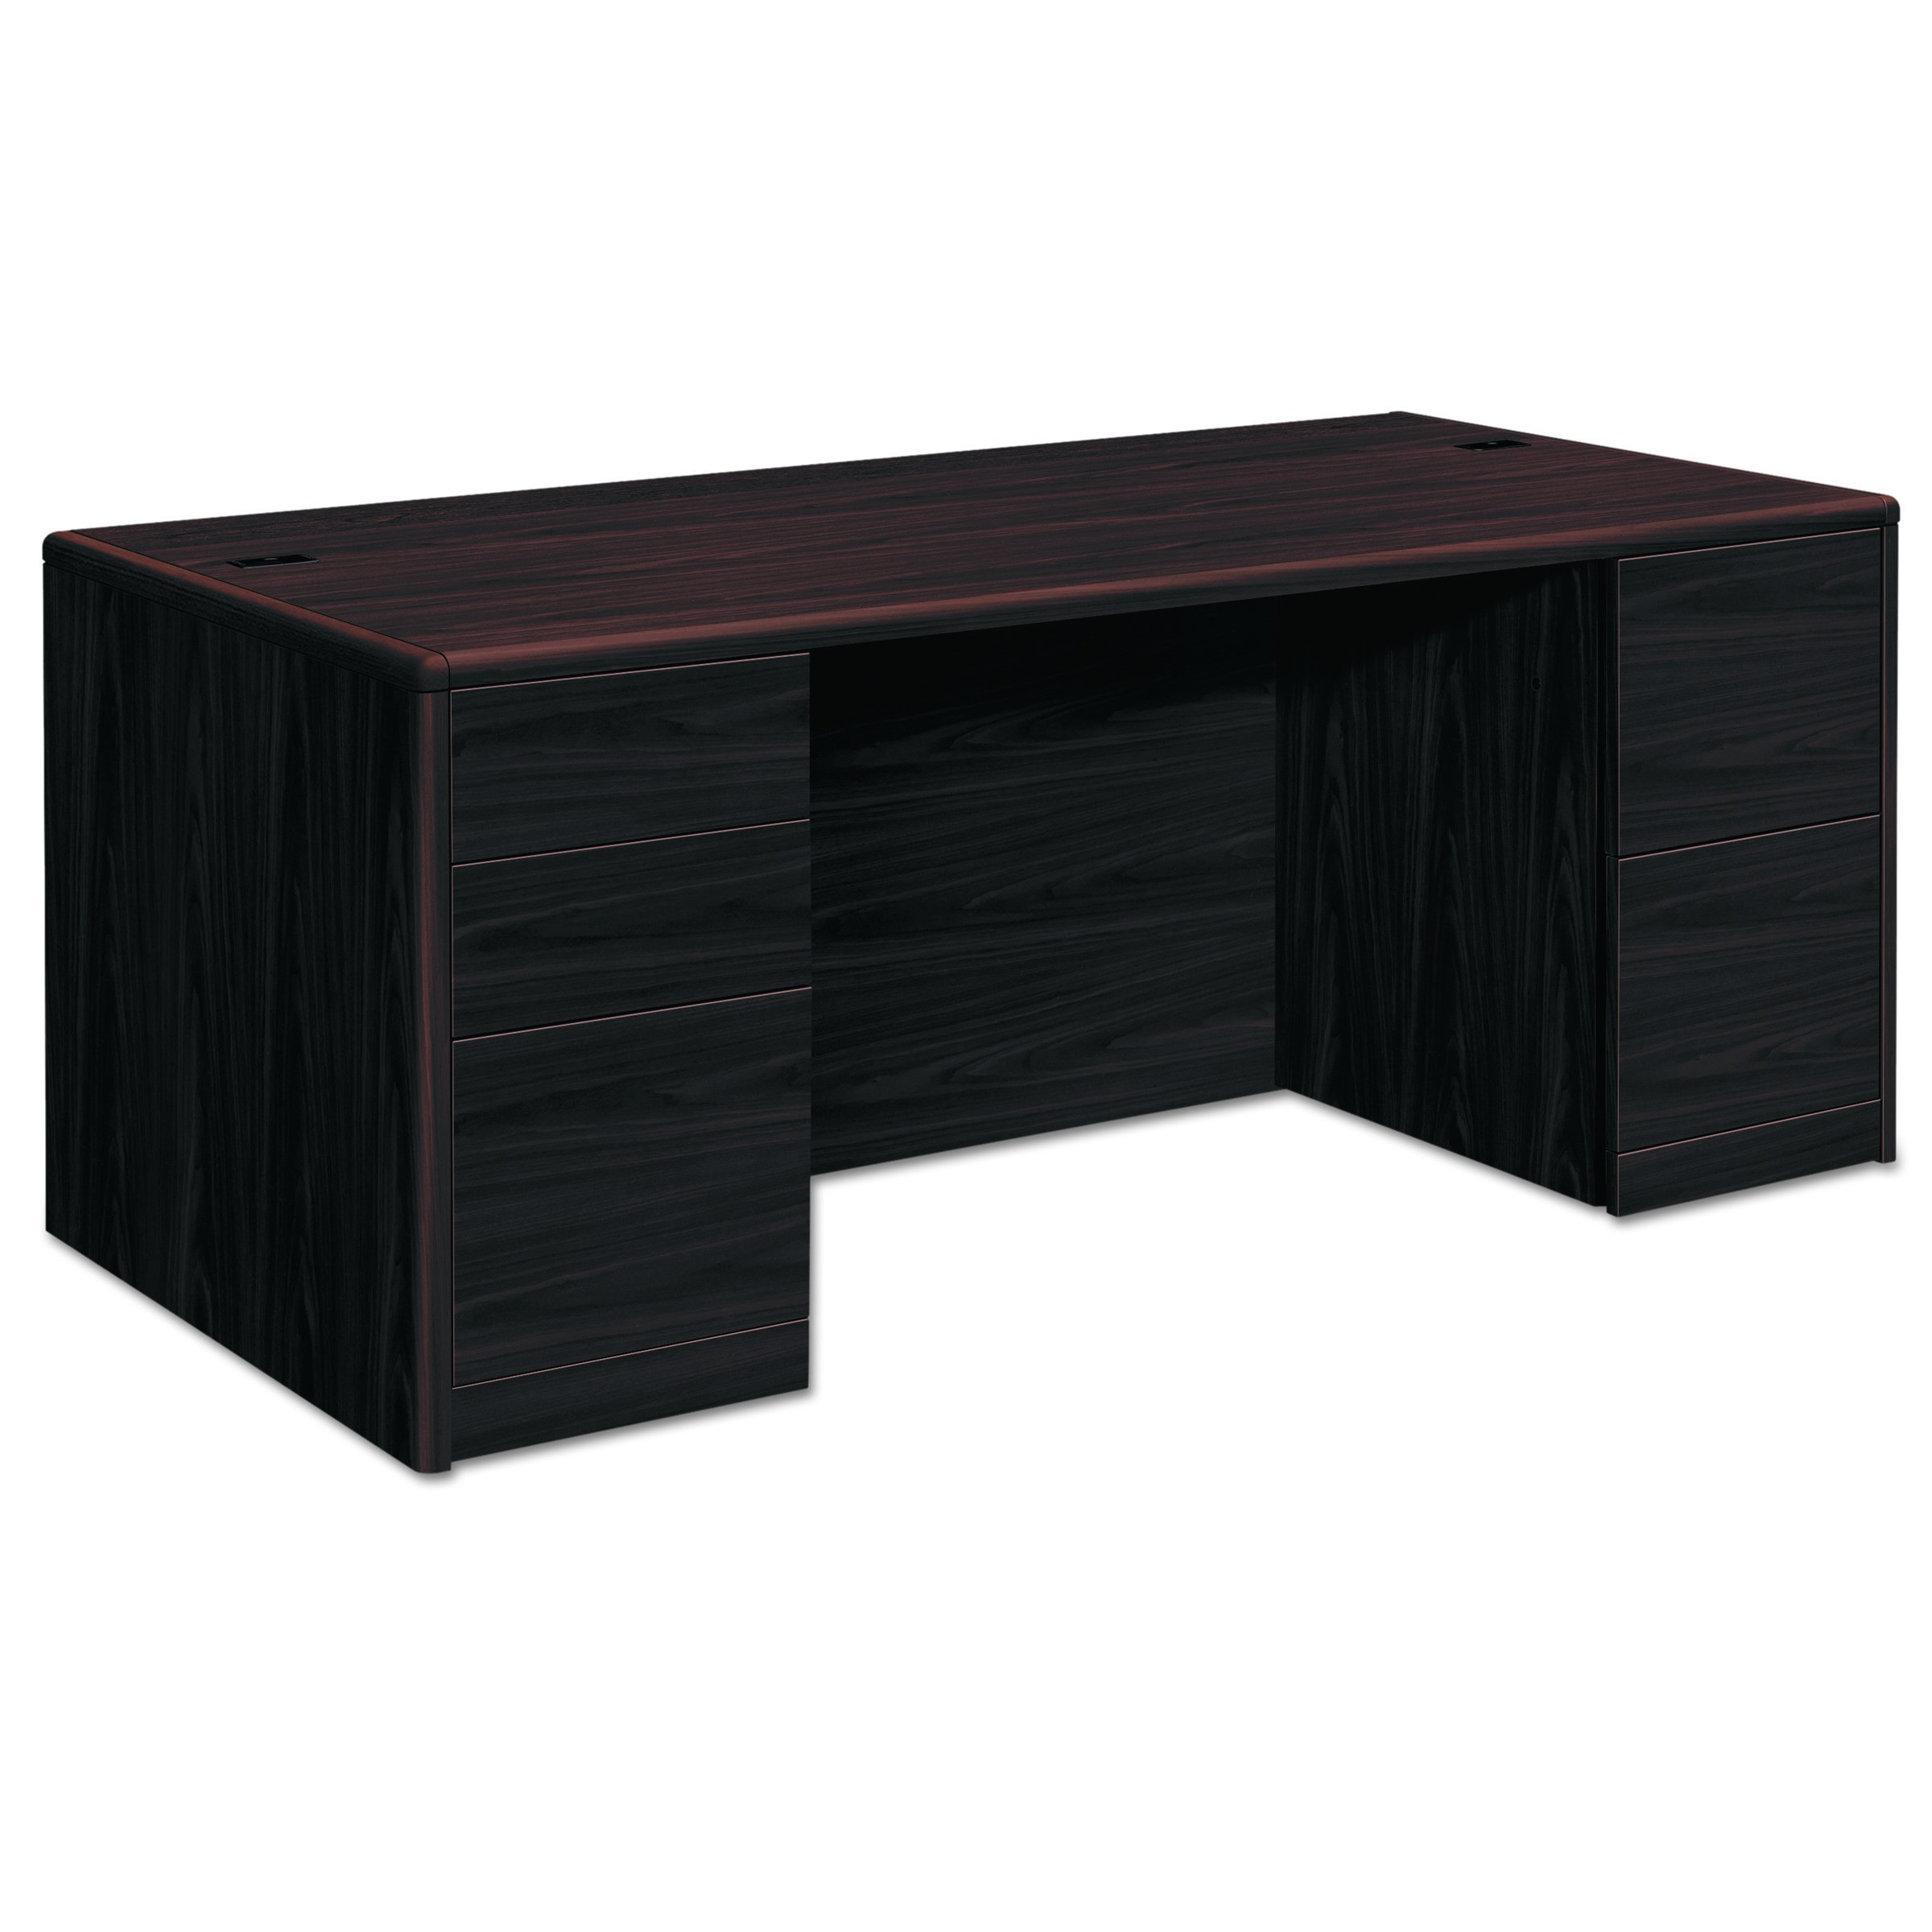 HON 10799NN 10700 Double Pedestal Desk with Full Pedestals, 72w x 36d x 29 1/2h, Mahogany by HON (Image #2)